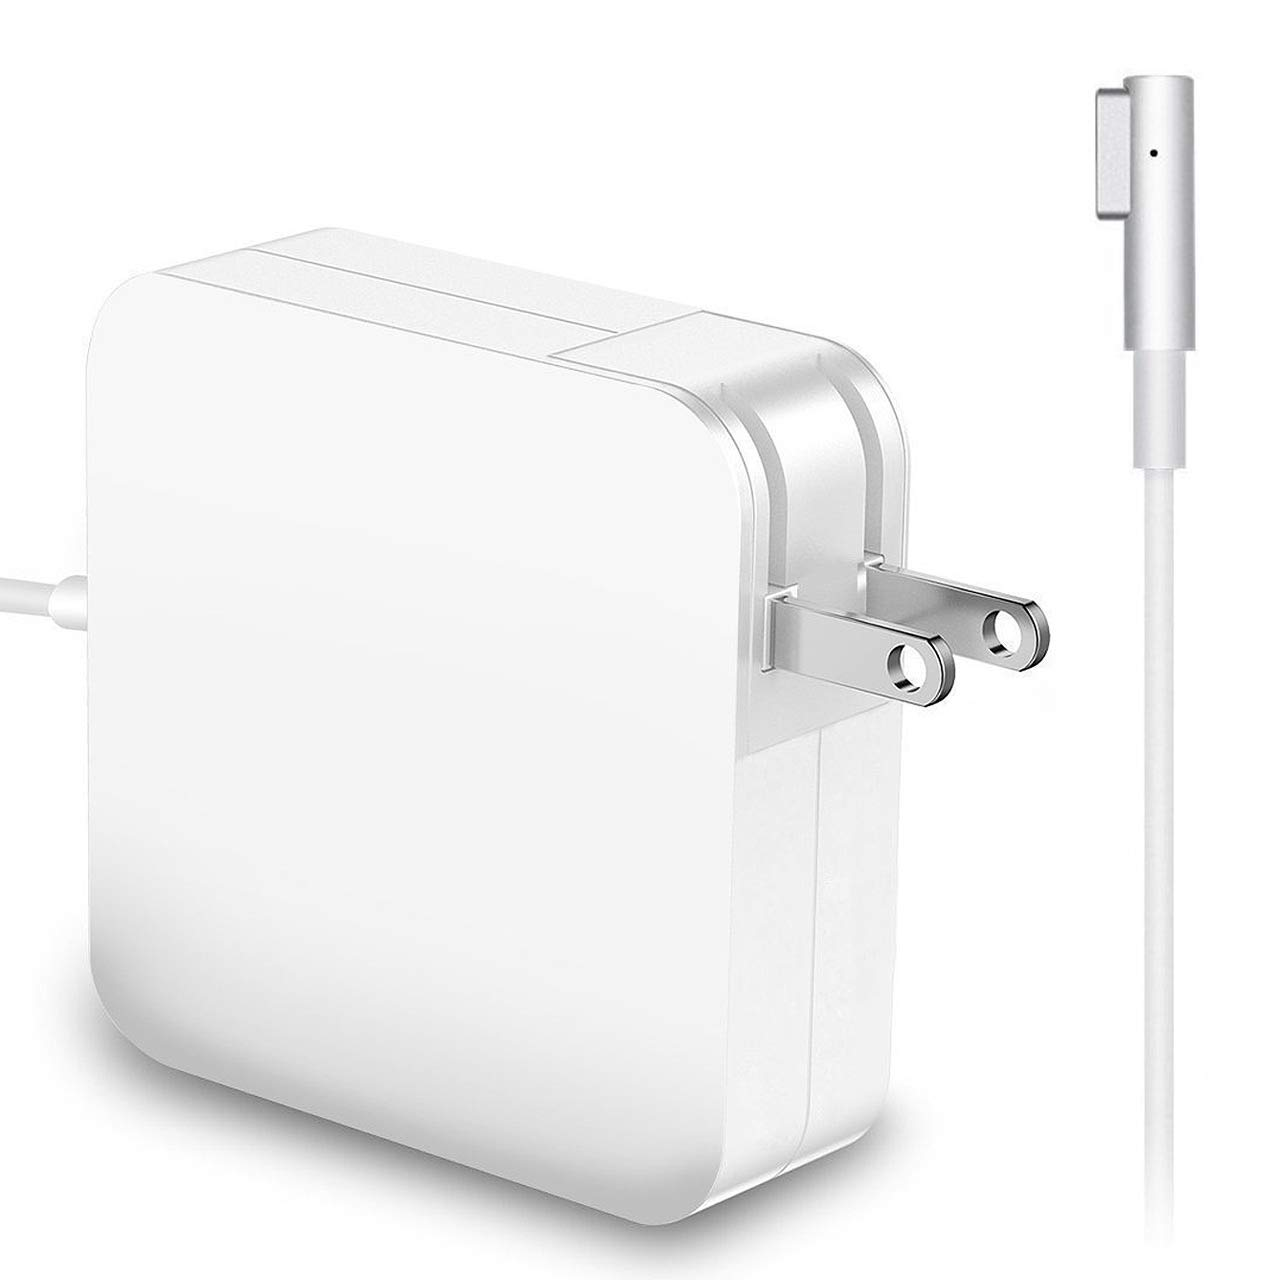 Mac Book Pro Charger, 60W L-Tip Magsafe Power Adapter Magnetic Connector Charger for Apple Mac Book/13-inch Mac Book Pro (Before Mid 2012 Models) by NganHing